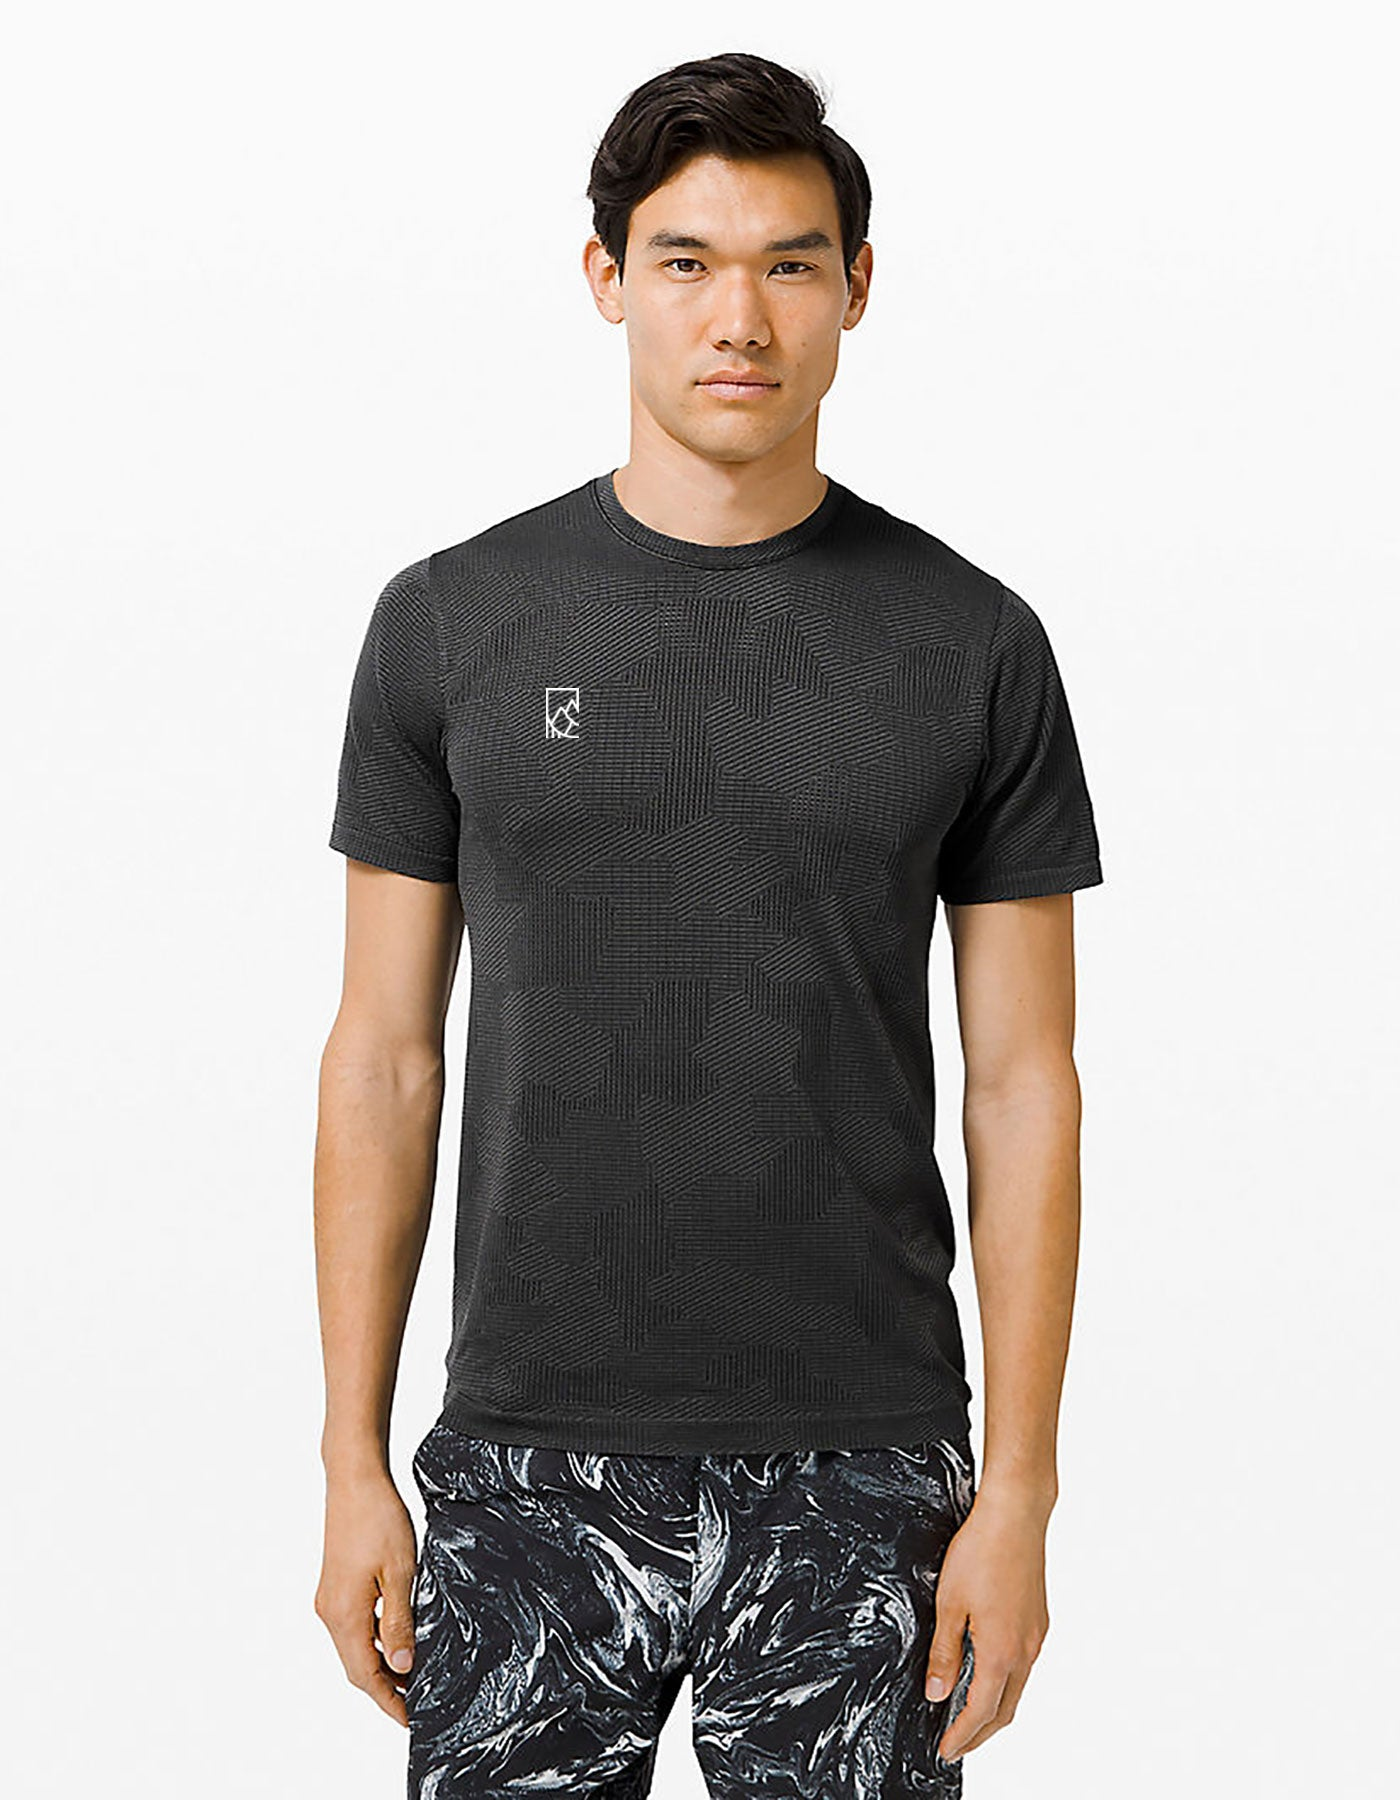 VRC All The Way Up Short Sleeve - Men's